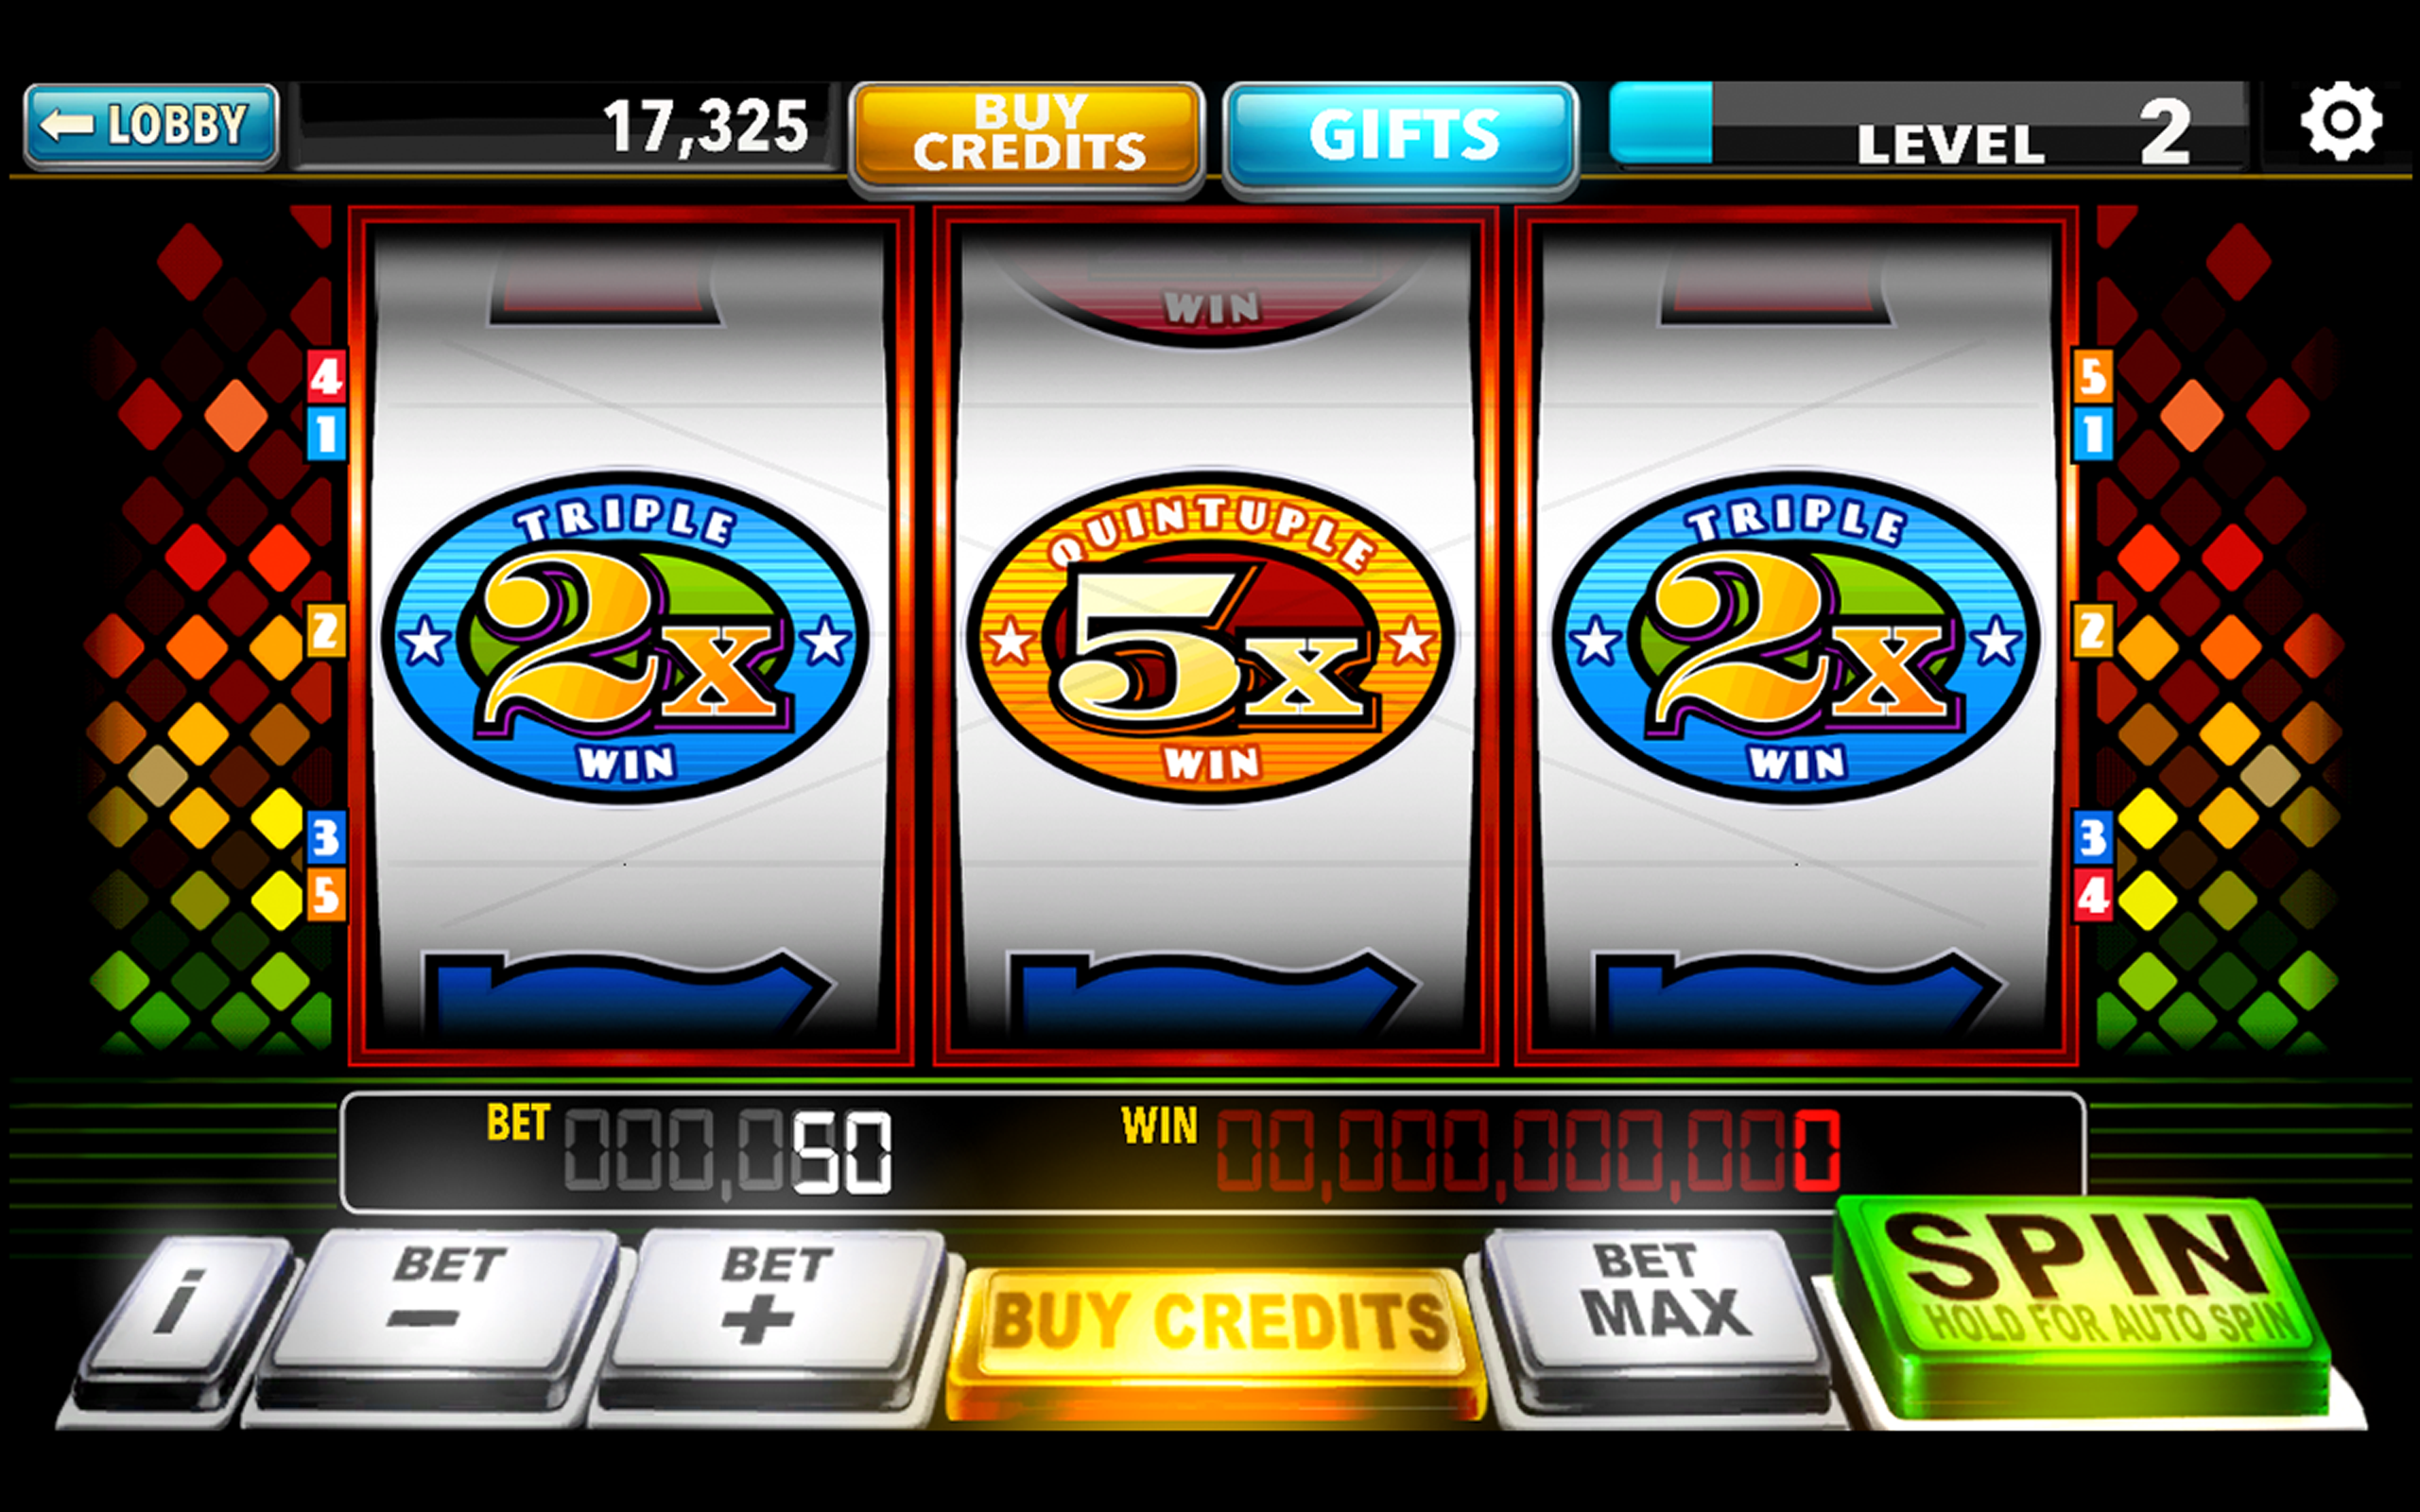 Play Free Slot Machines Bonus Rounds No Download